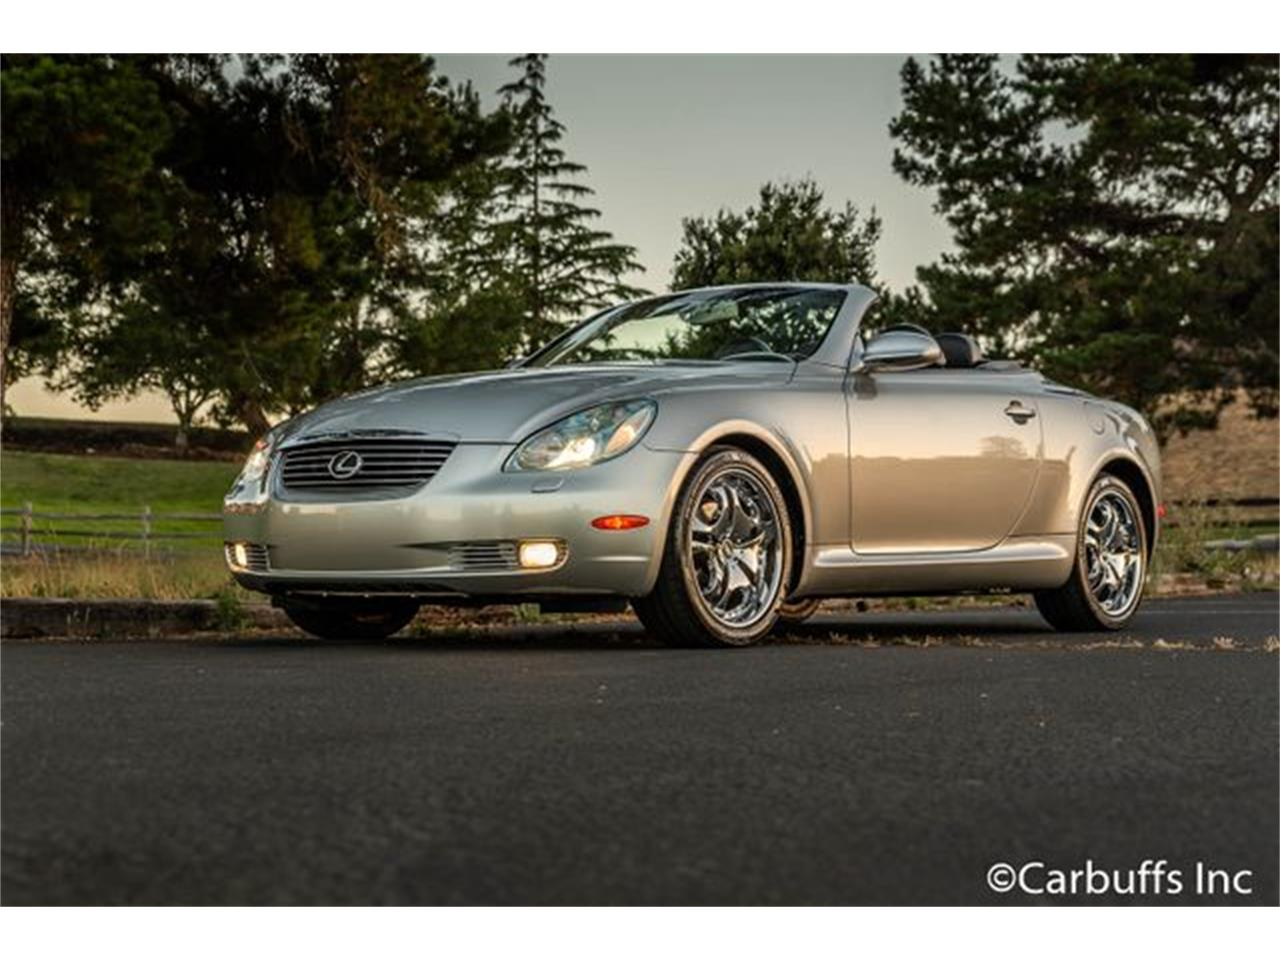 Large Picture of '04 Lexus SC400 - $14,950.00 - Q5AJ